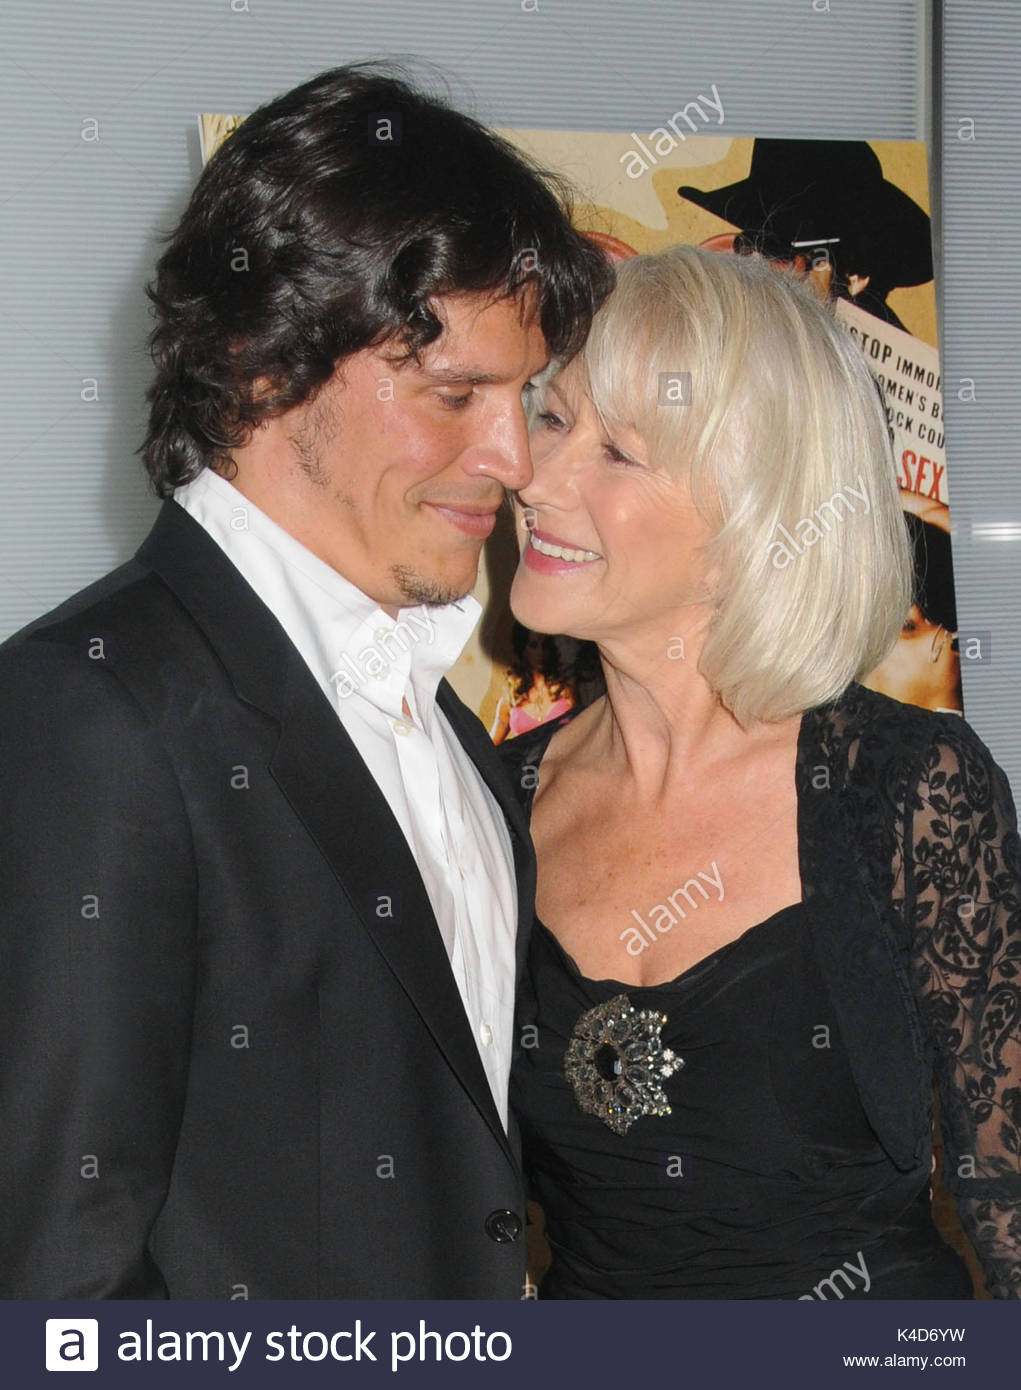 Sergio Peris Mencheta And Helen Mirren The Cast Of Love Ranch Arrive For The Films New York Premiere Held At The Dolby Screening Room Nyc